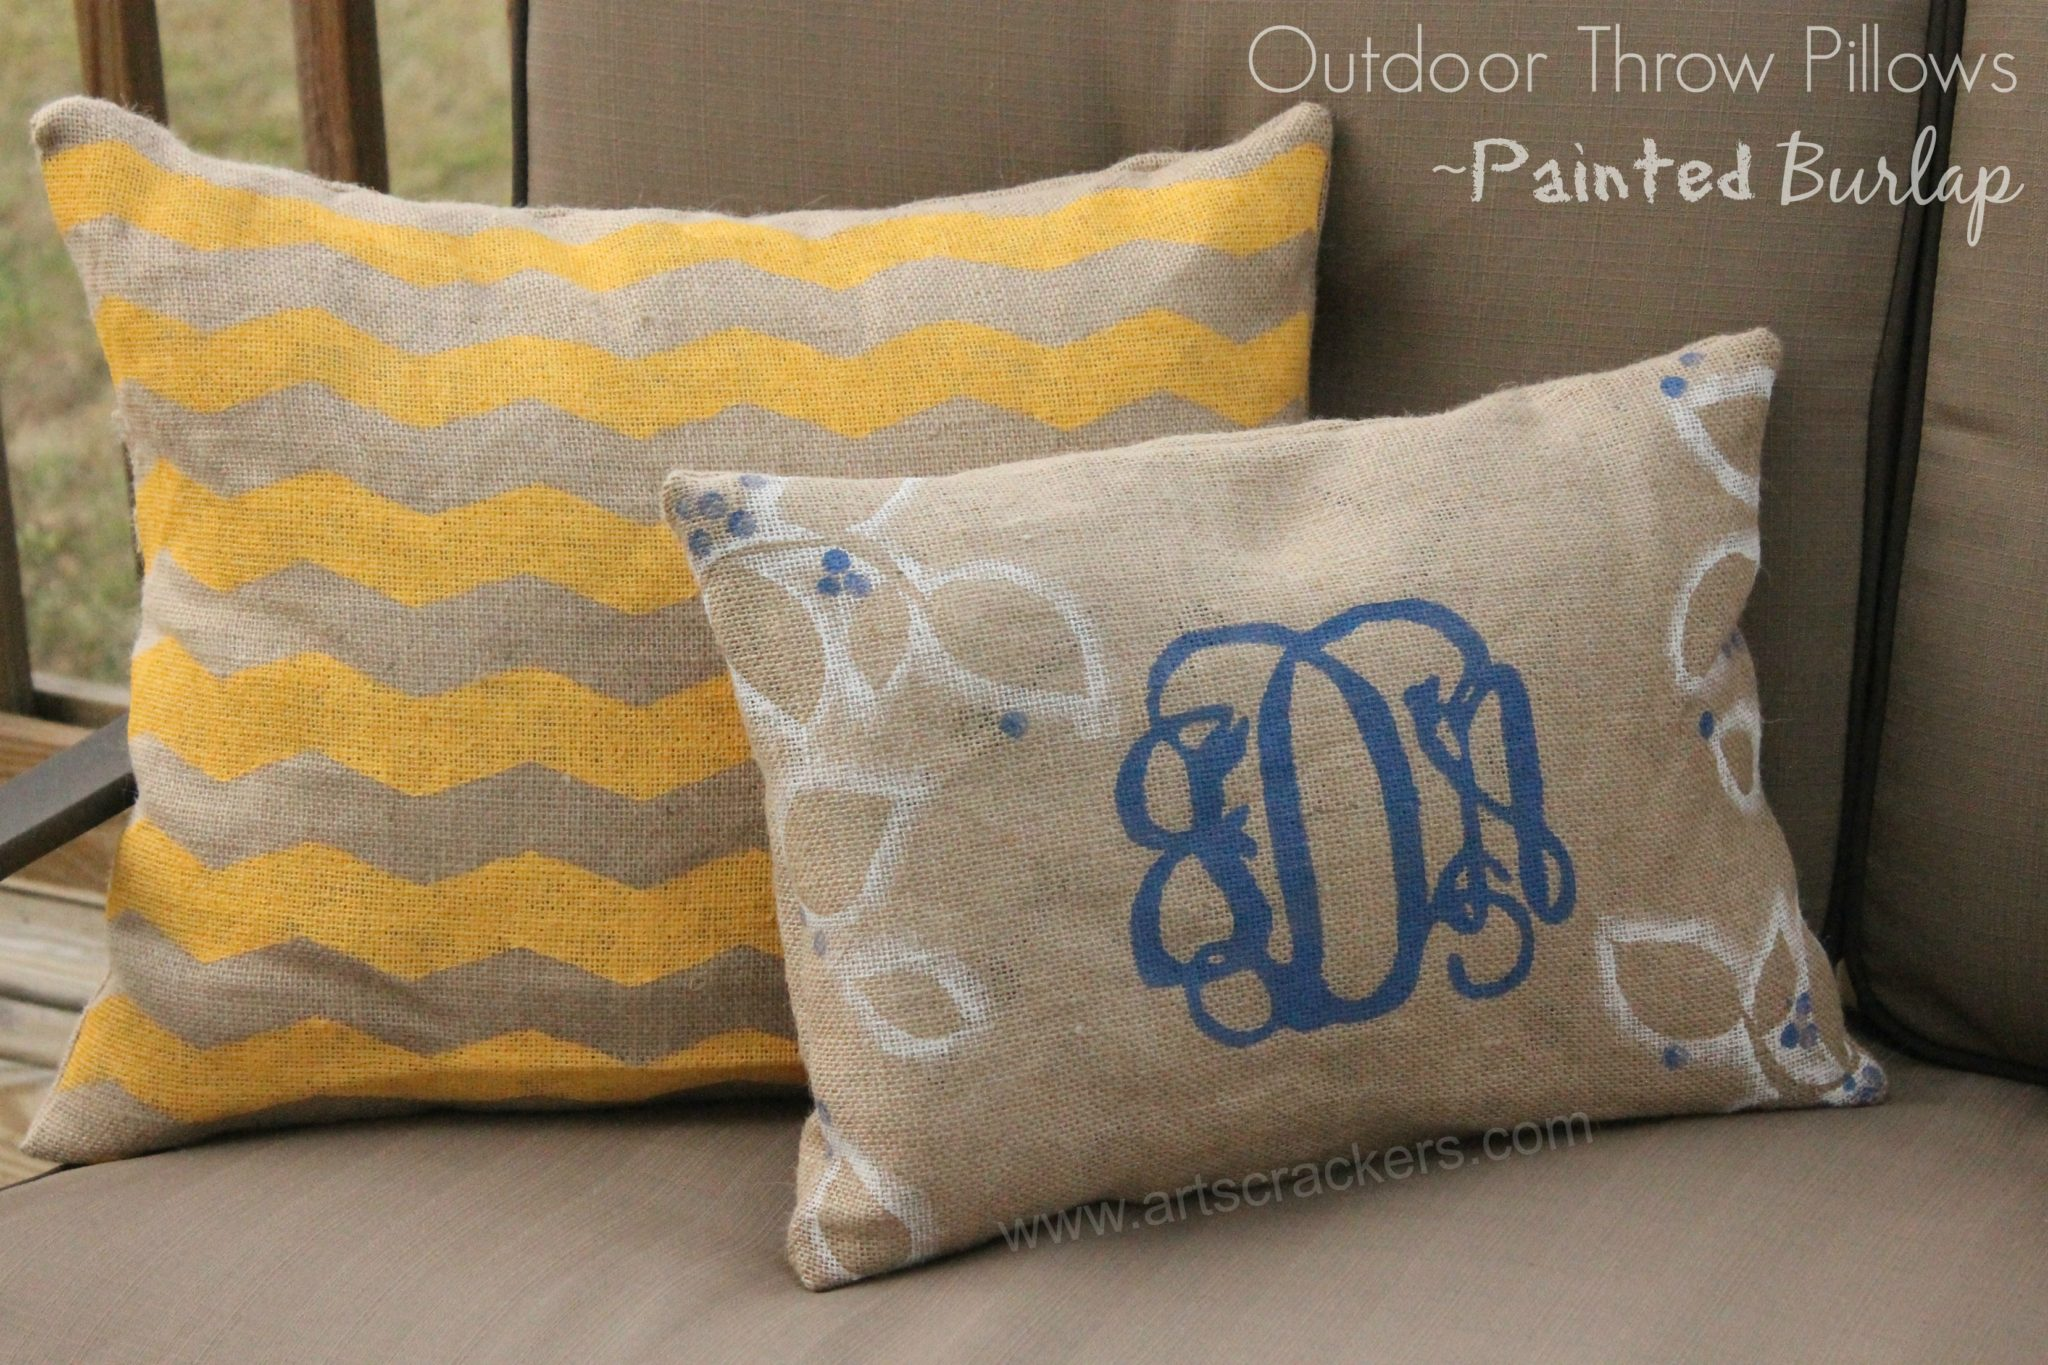 DIY Painted Burlap Outdoor Throw Pillows Arts & Crackers